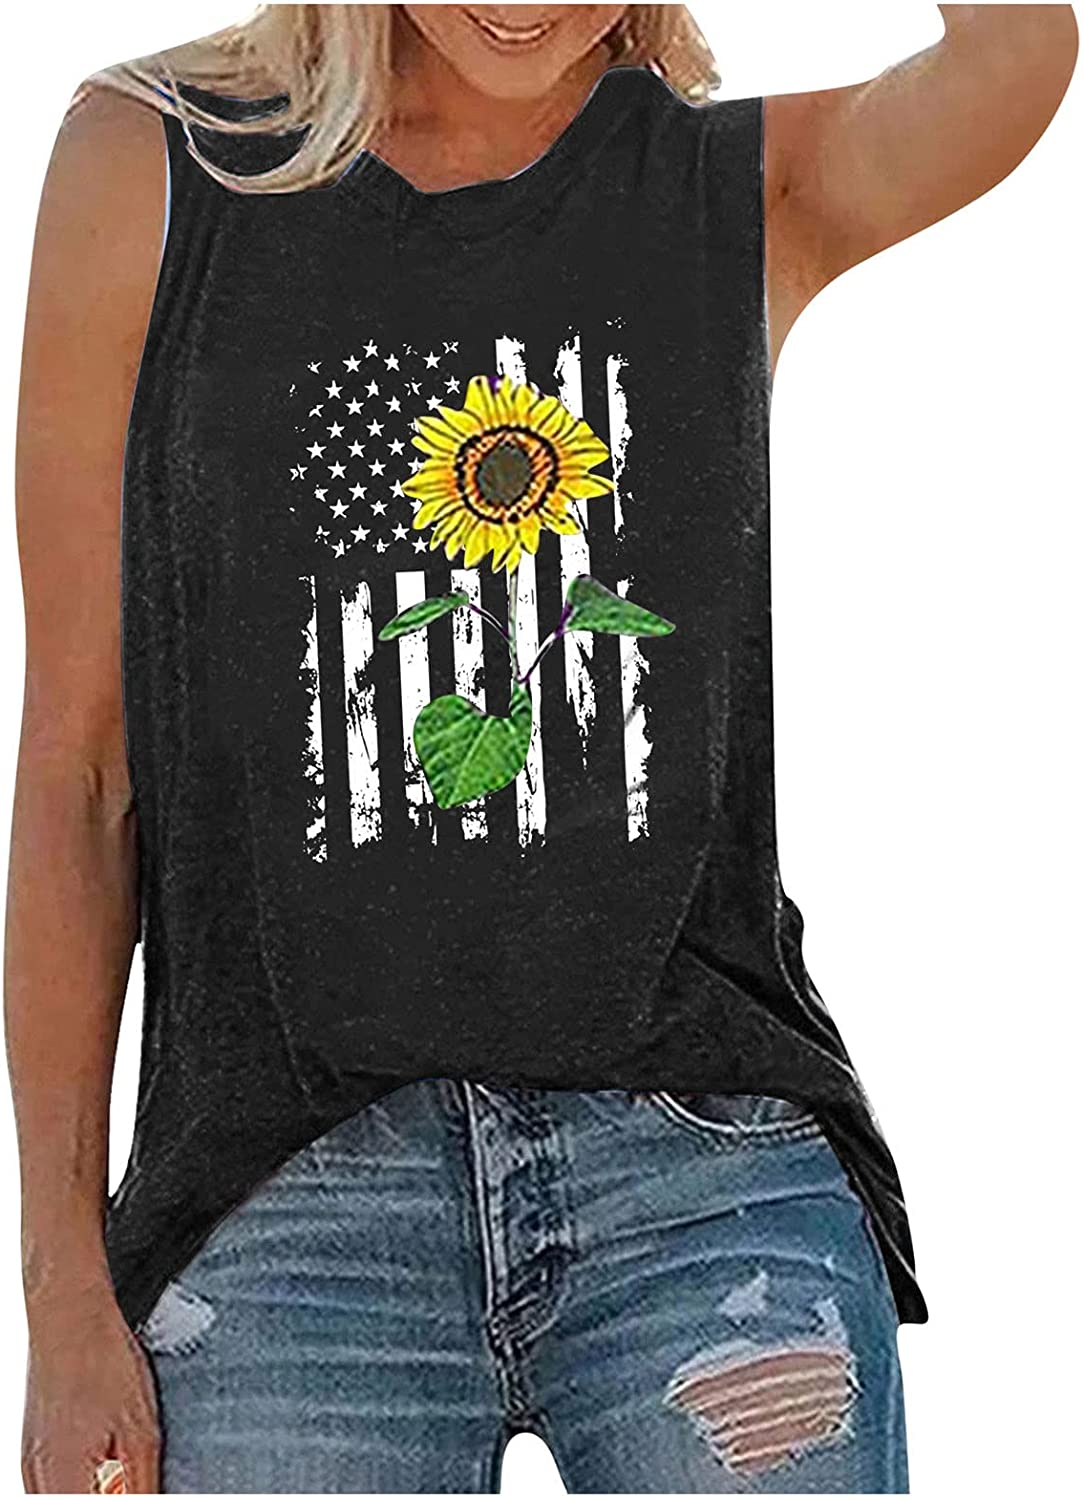 AODONG Tank Tops for Women, Womens Summer Casual Sleeveless Vest Tshirt 4th of July Workout Blouse Tank Top Tunic Tee